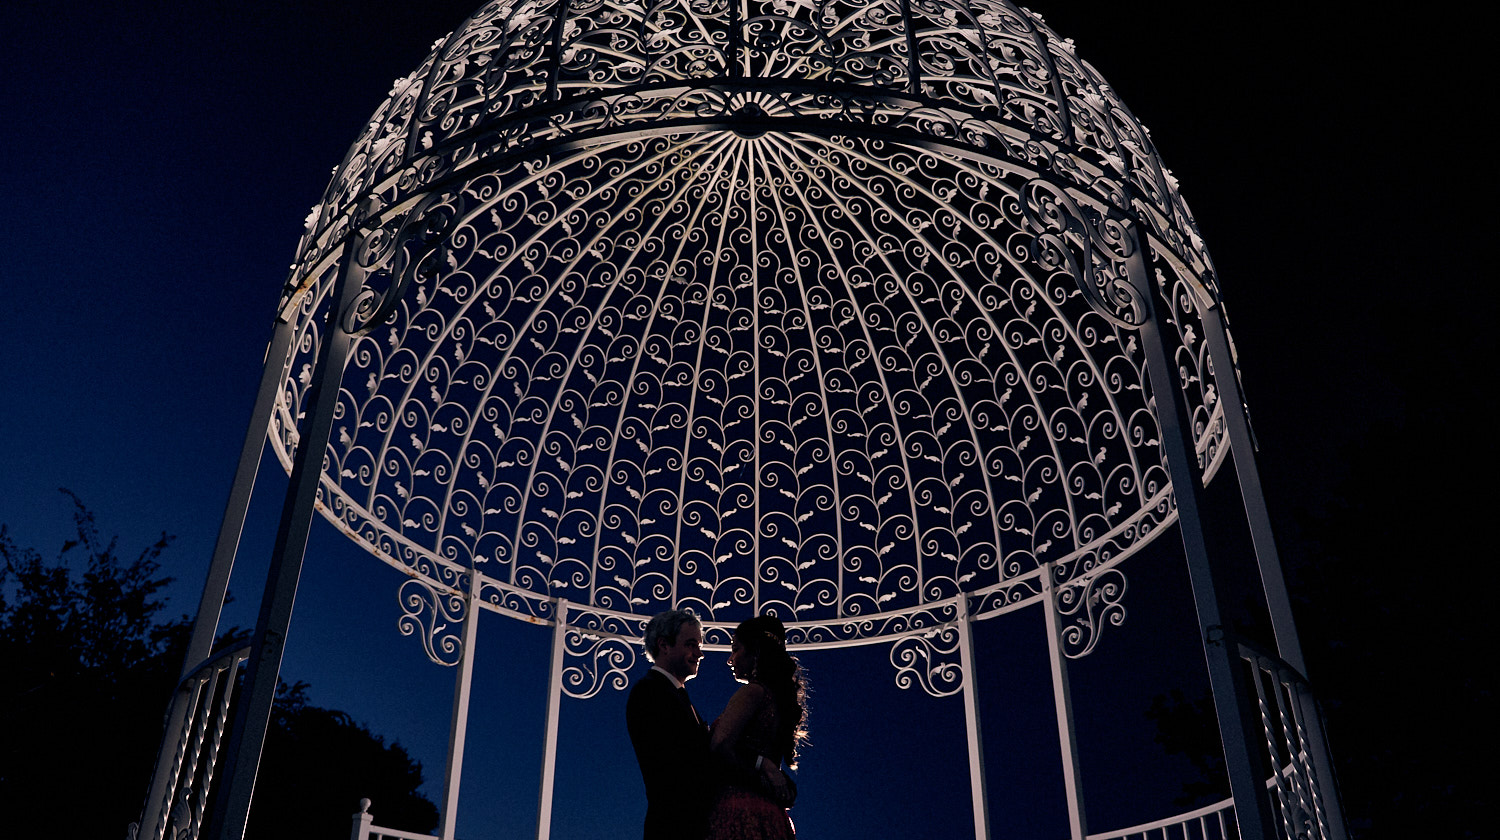 Silhouettes of the couple under the gazeebo at Saratoga Country Club.